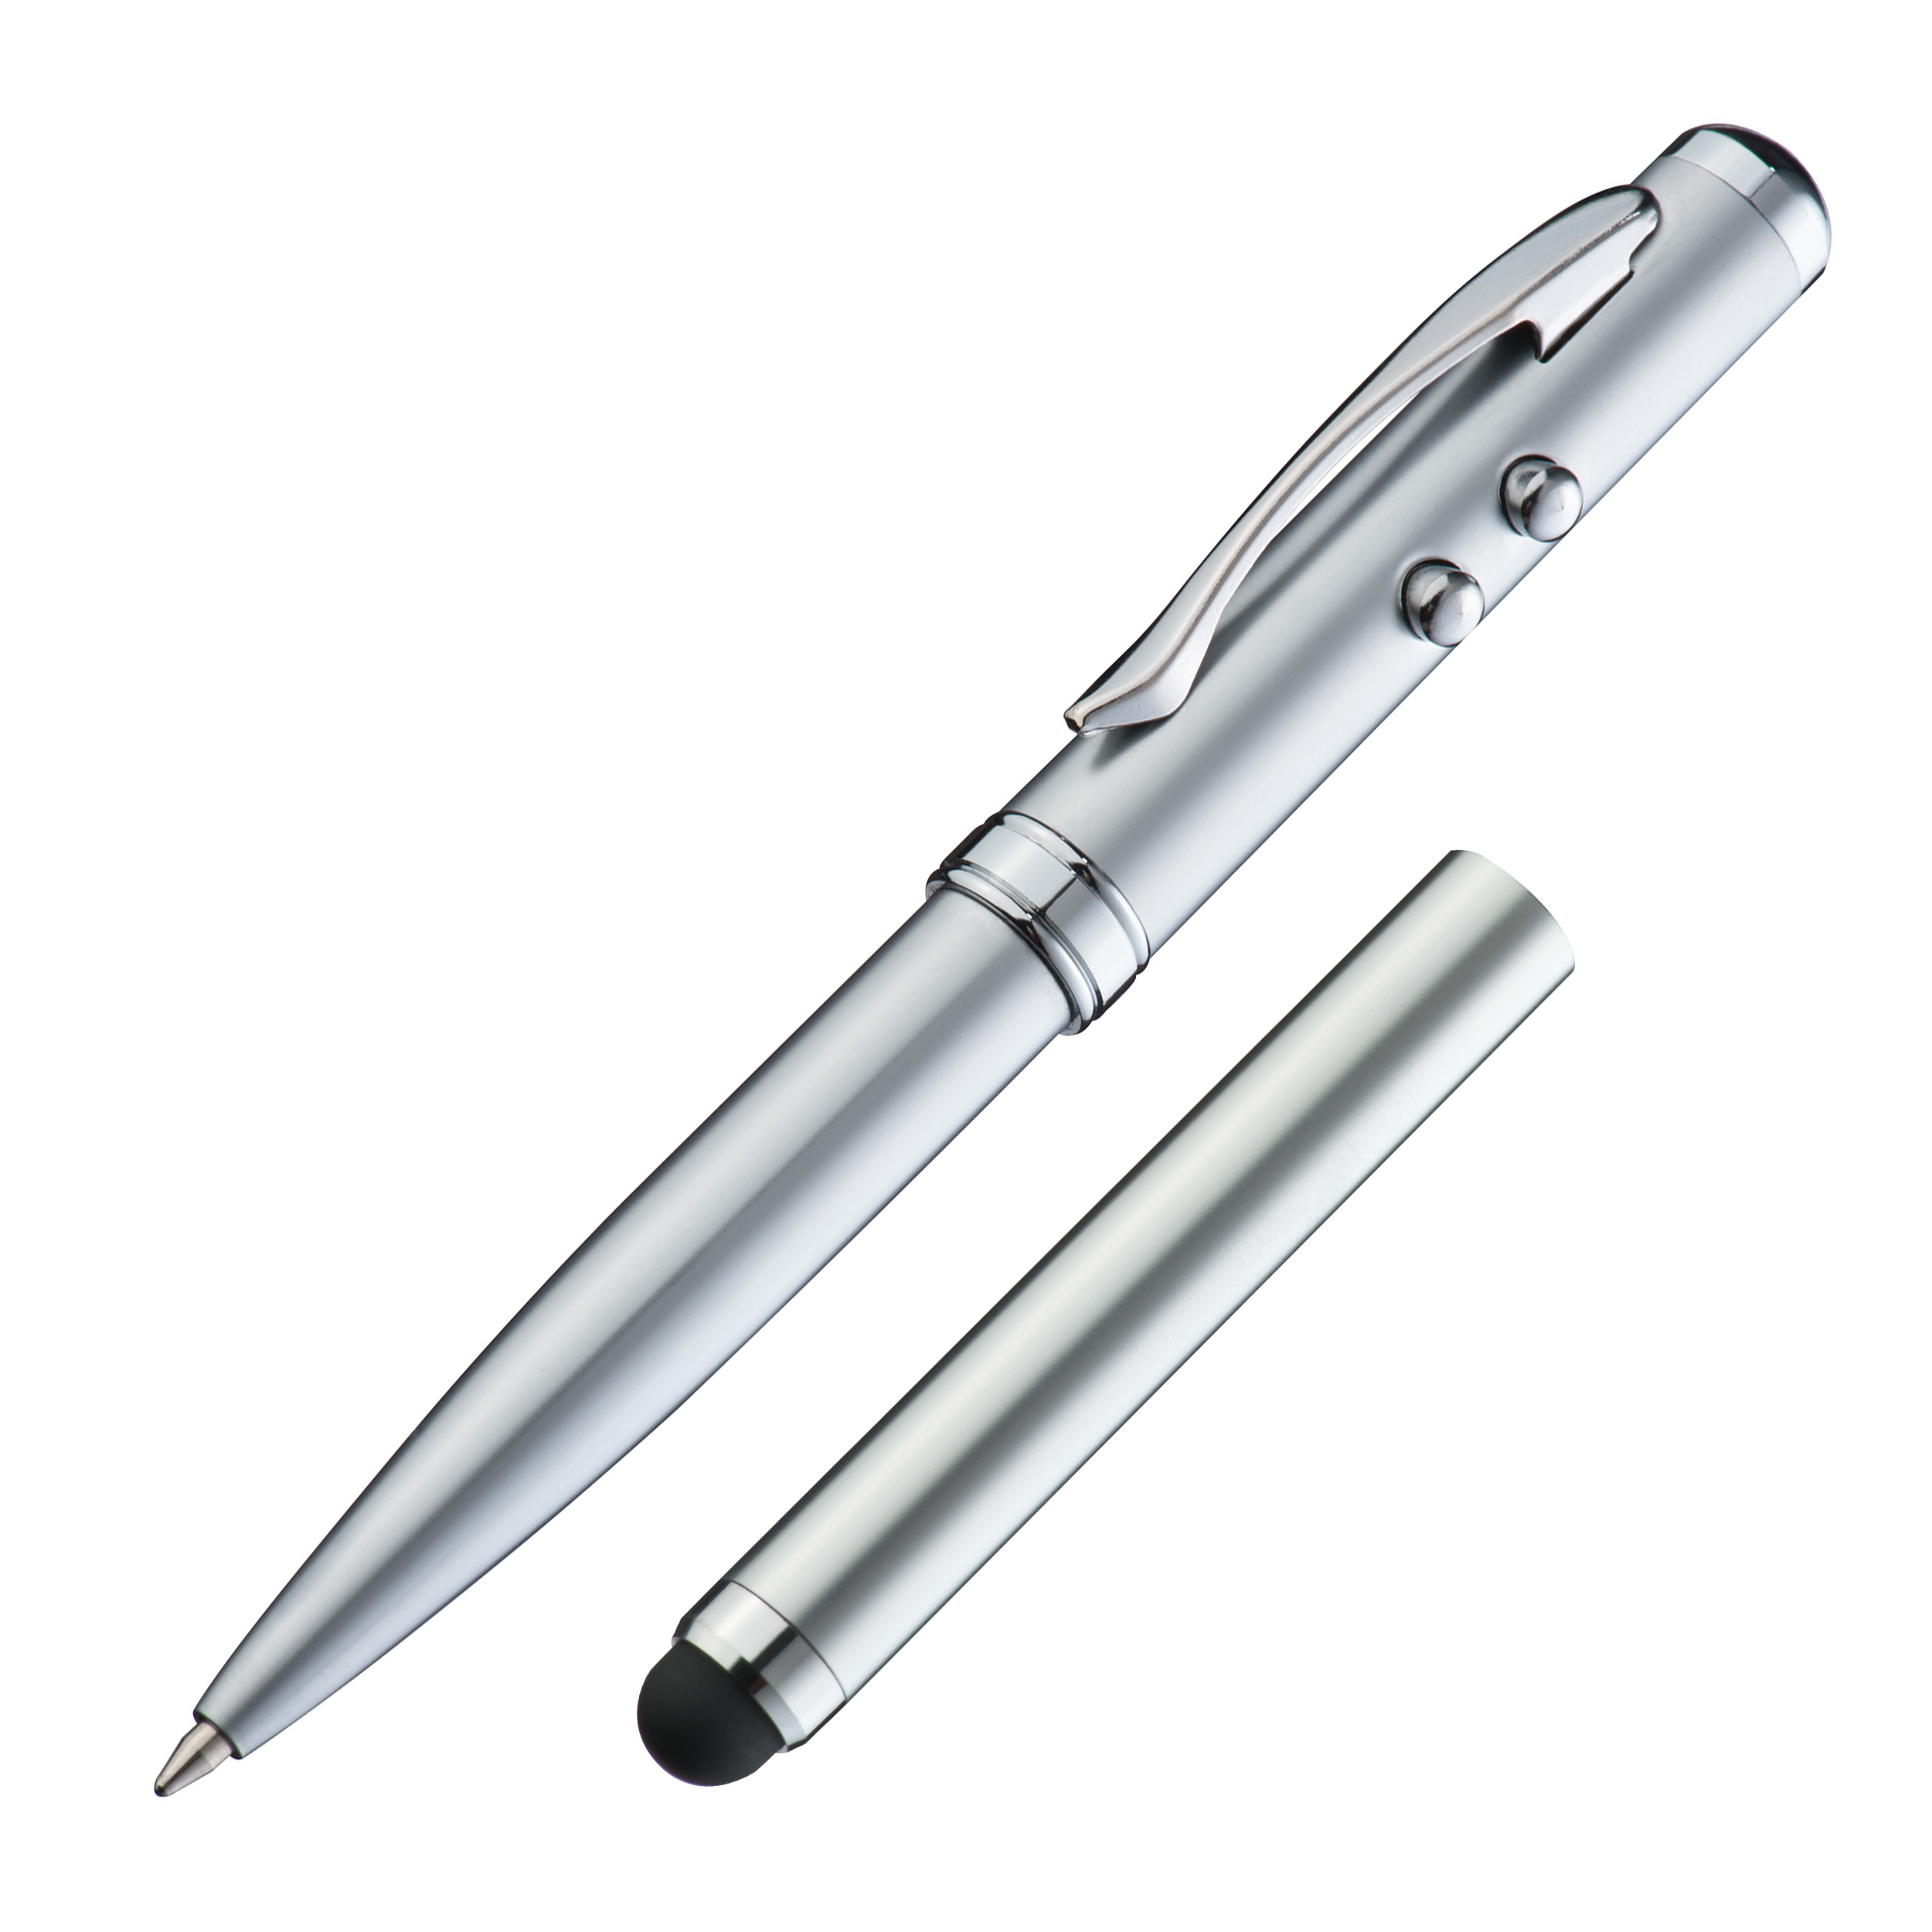 Laser pointer with LED, touch function and ball pen